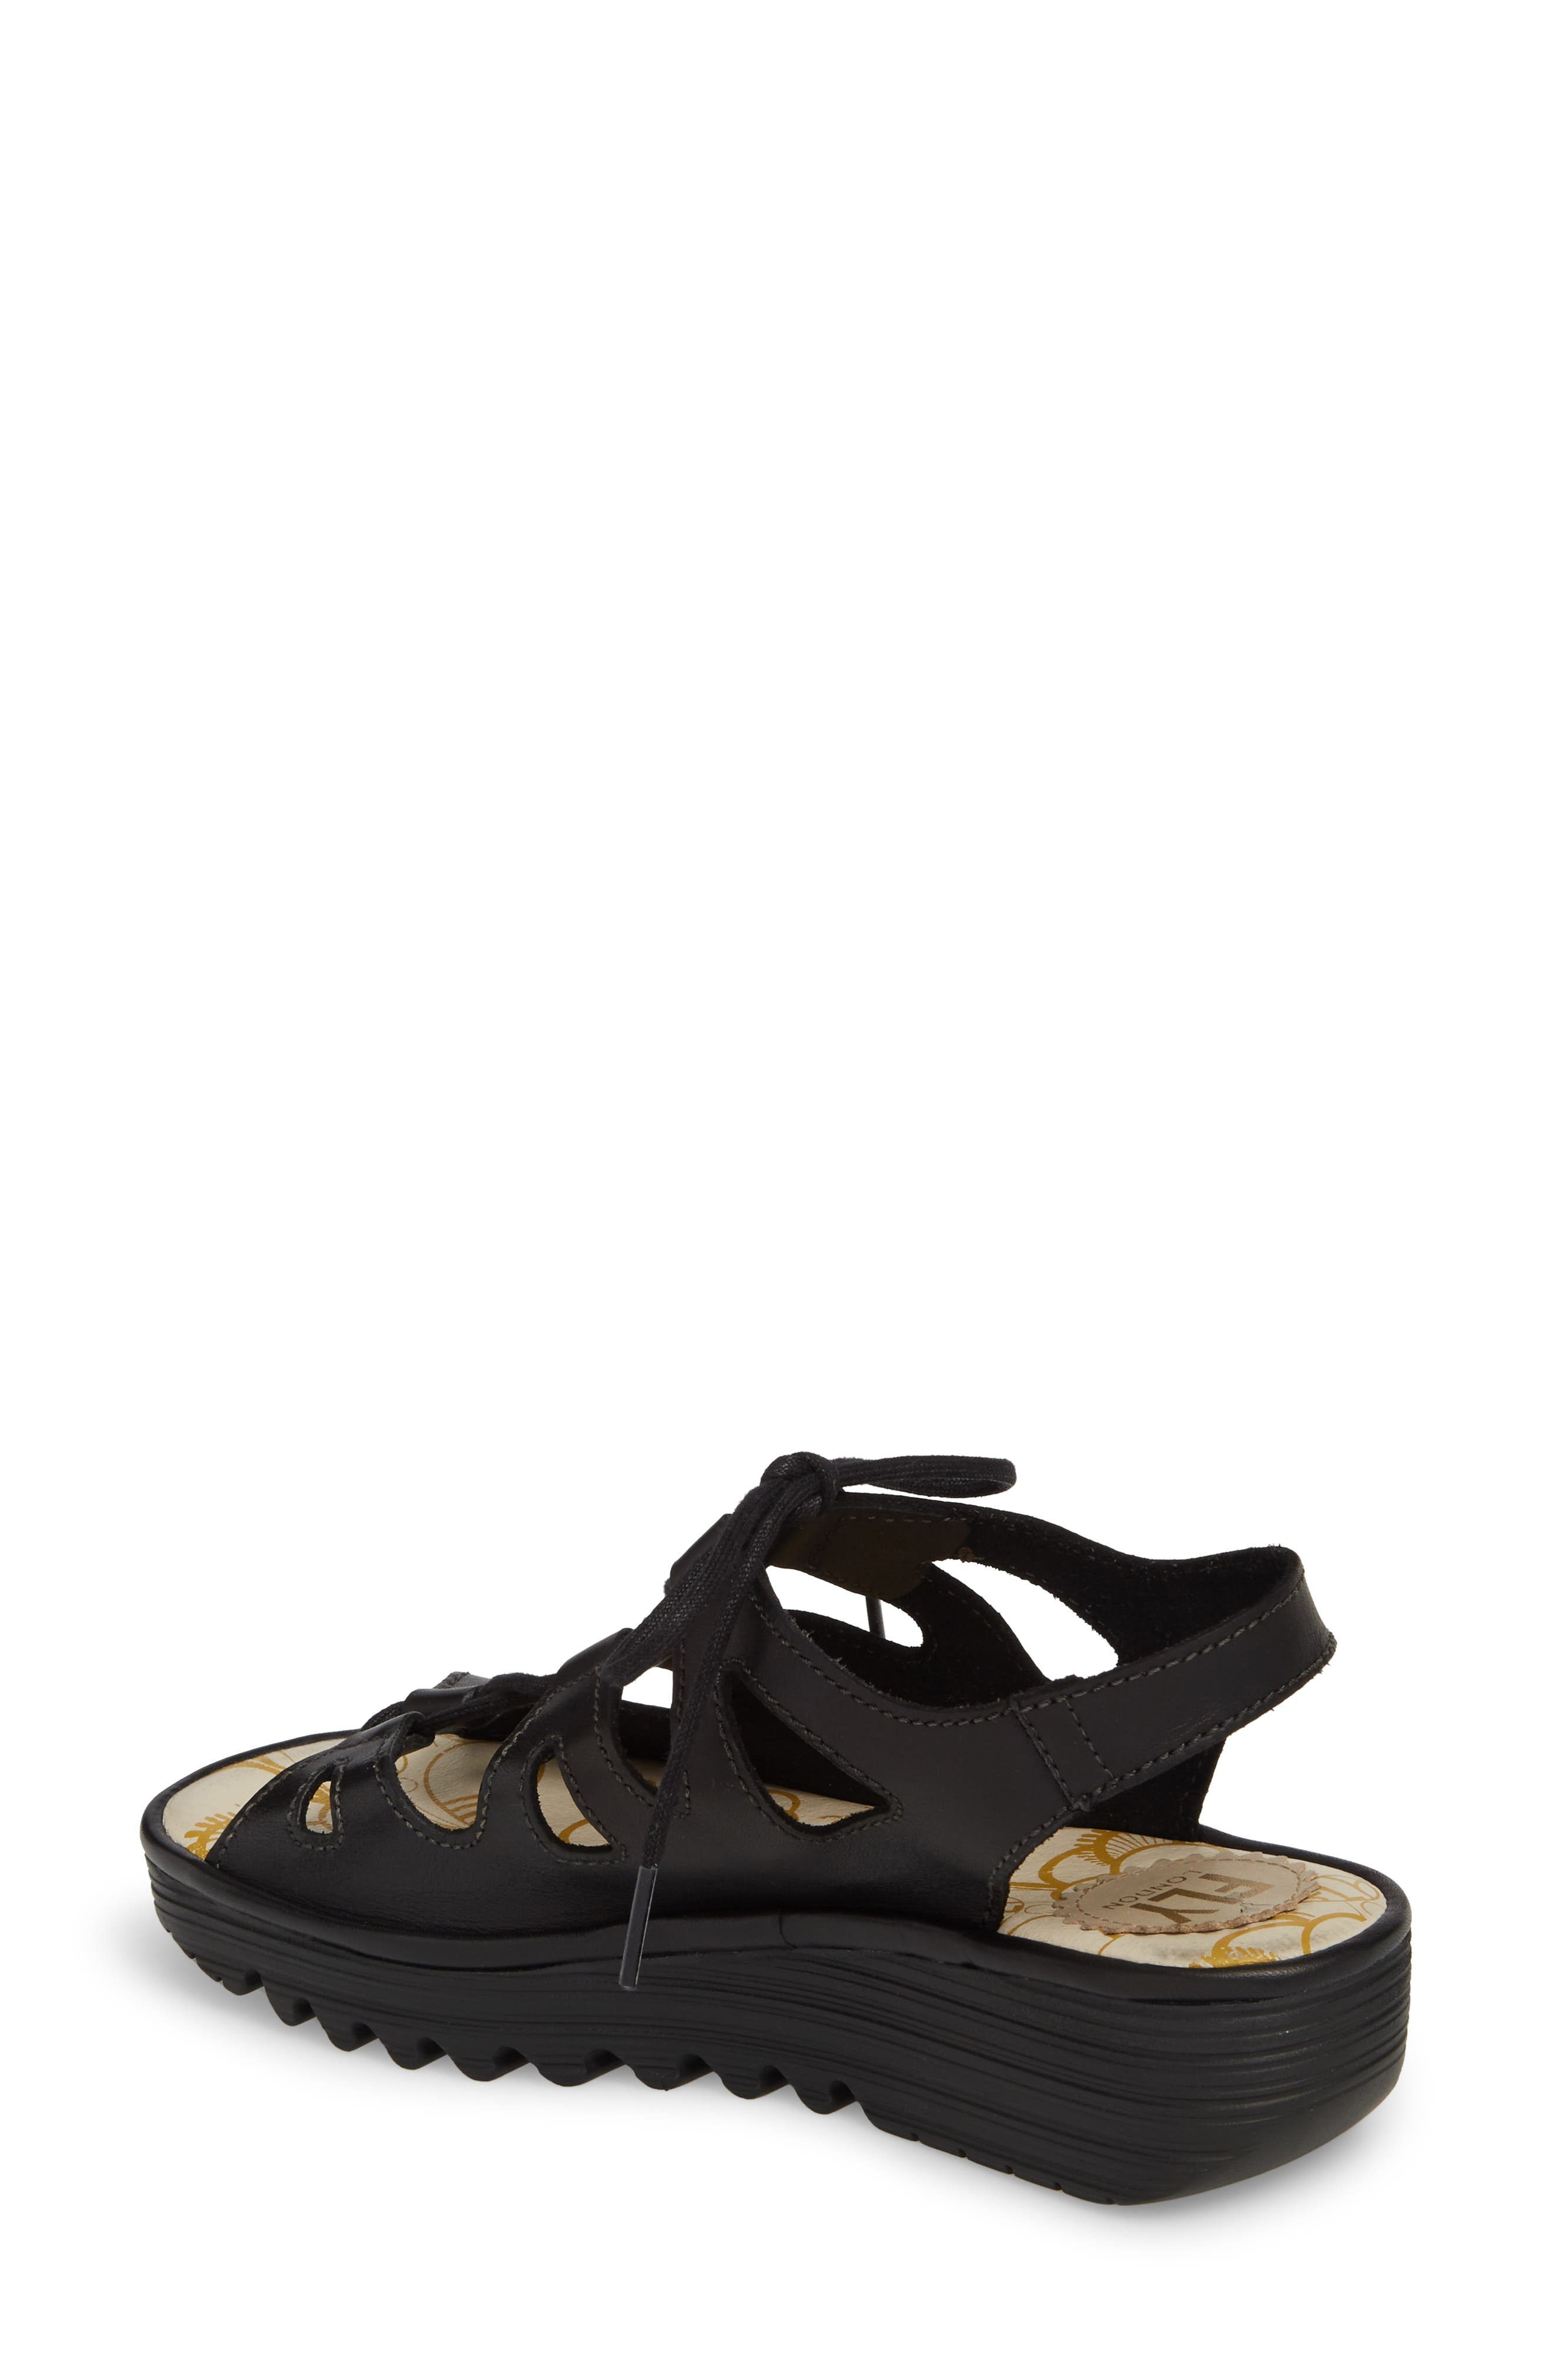 Exon Sandal,                             Alternate thumbnail 2, color,                             Black Colmar Leather